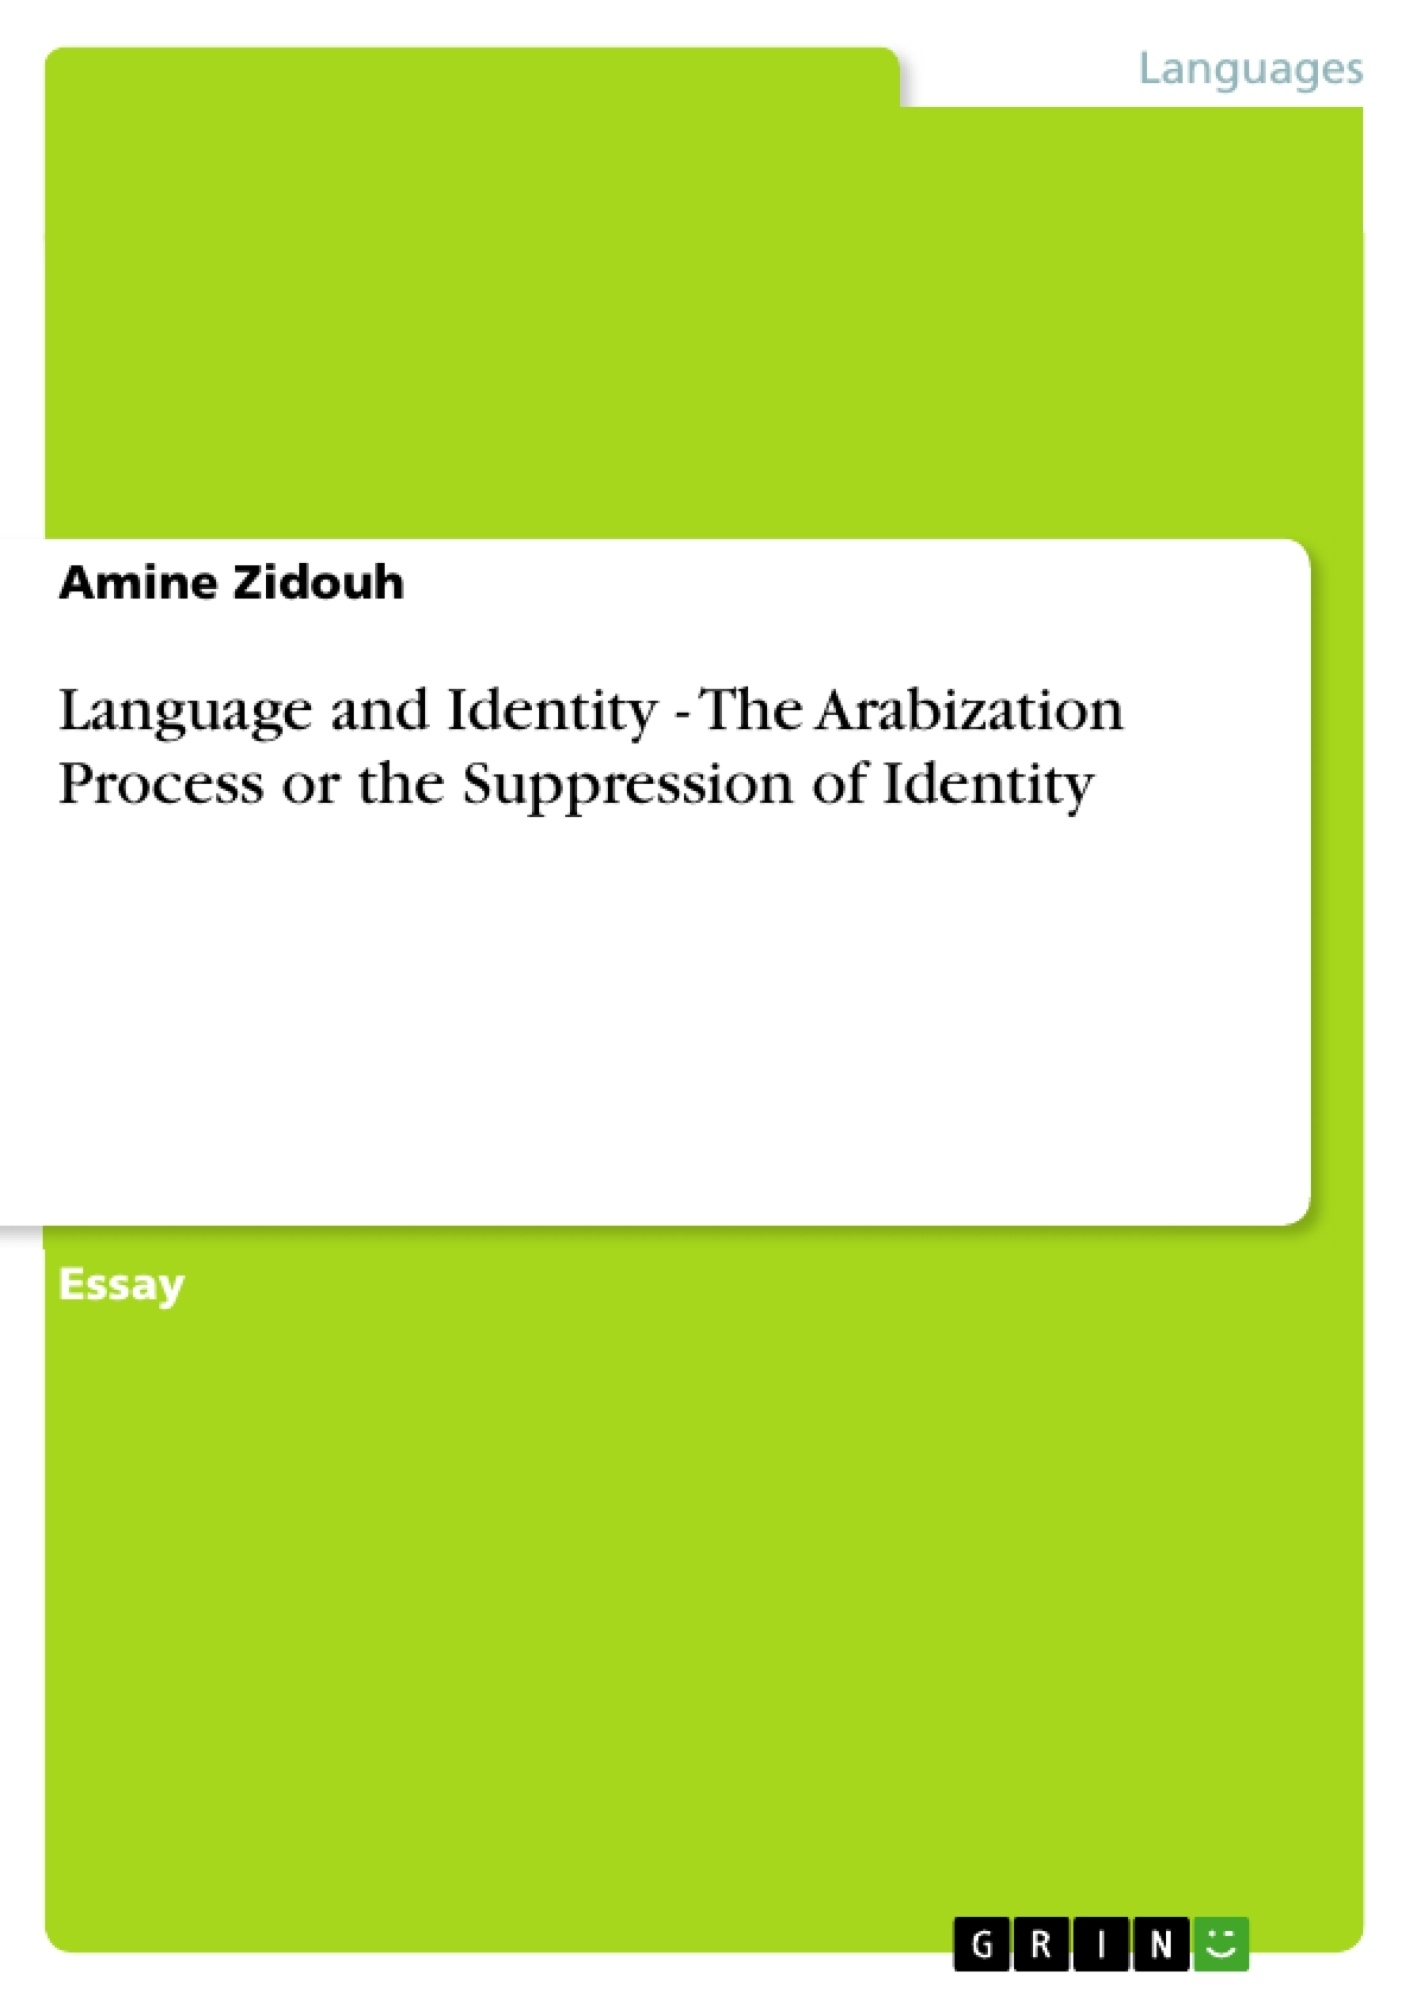 language and identity the arabization process or the suppression language and identity the arabization process or the suppression publish your master s thesis bachelor s thesis essay or term paper